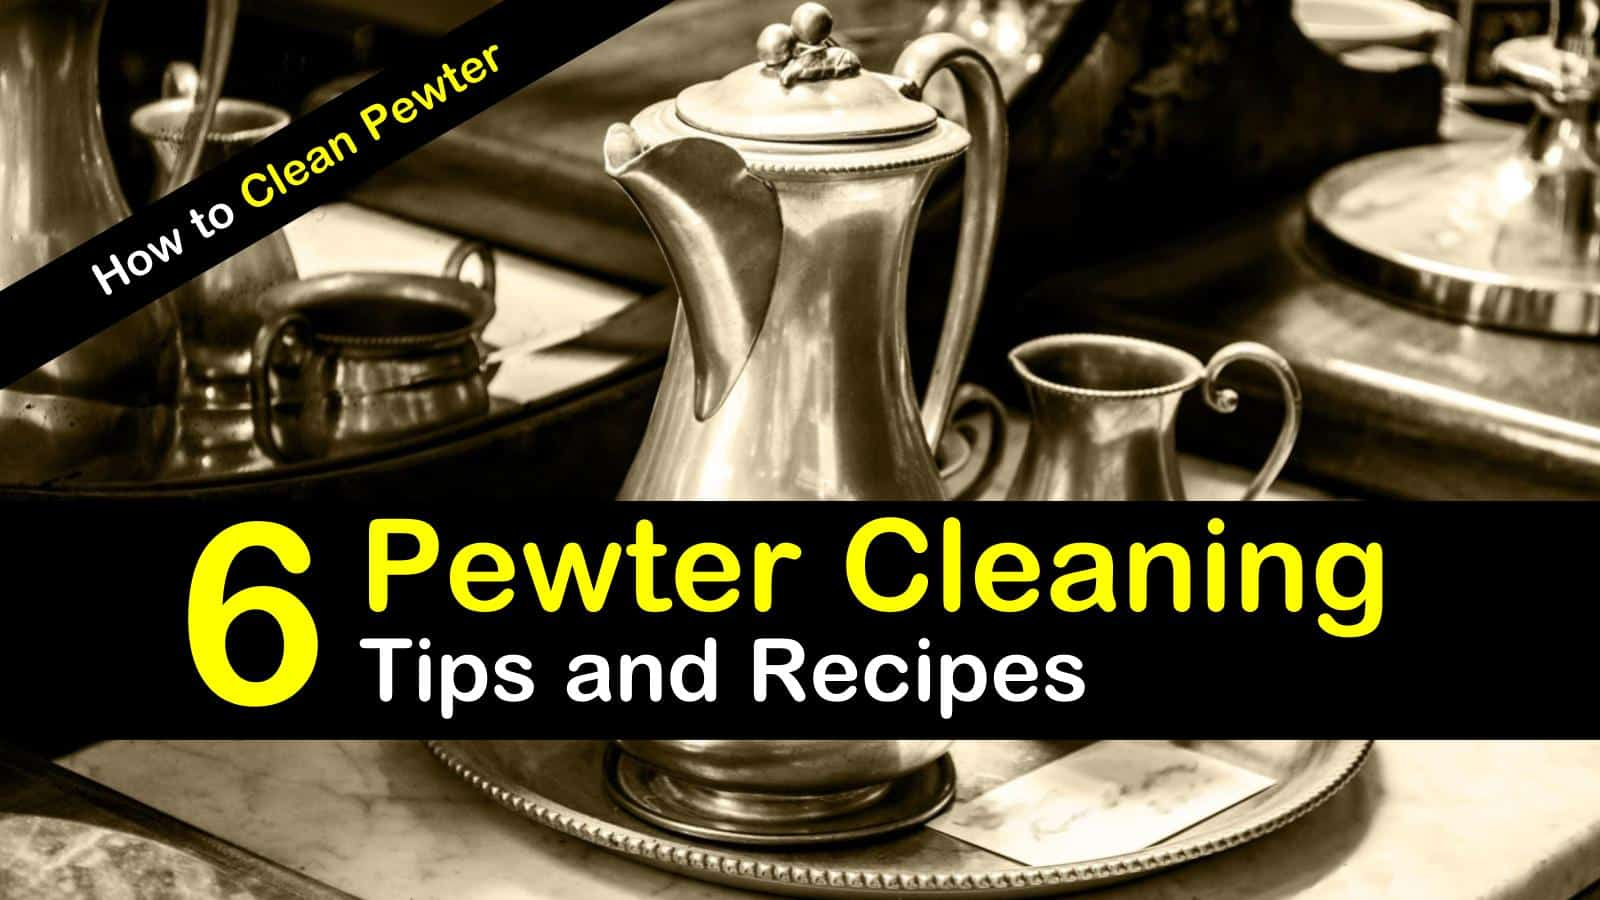 titilimg how to clean pewter